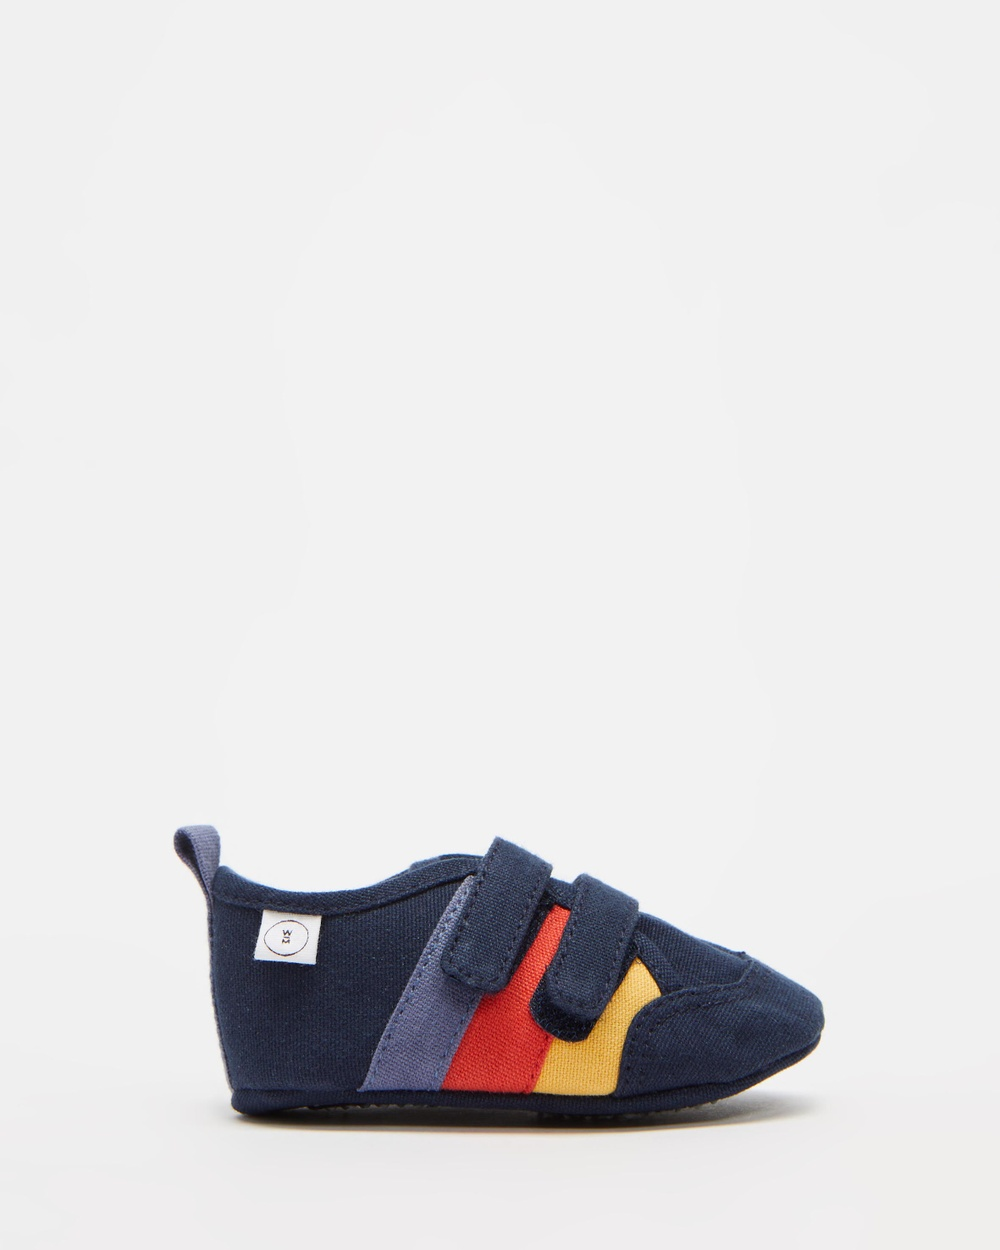 Walnut Melbourne Play Nate Retro Canvas Sneakers Babies Peacoat